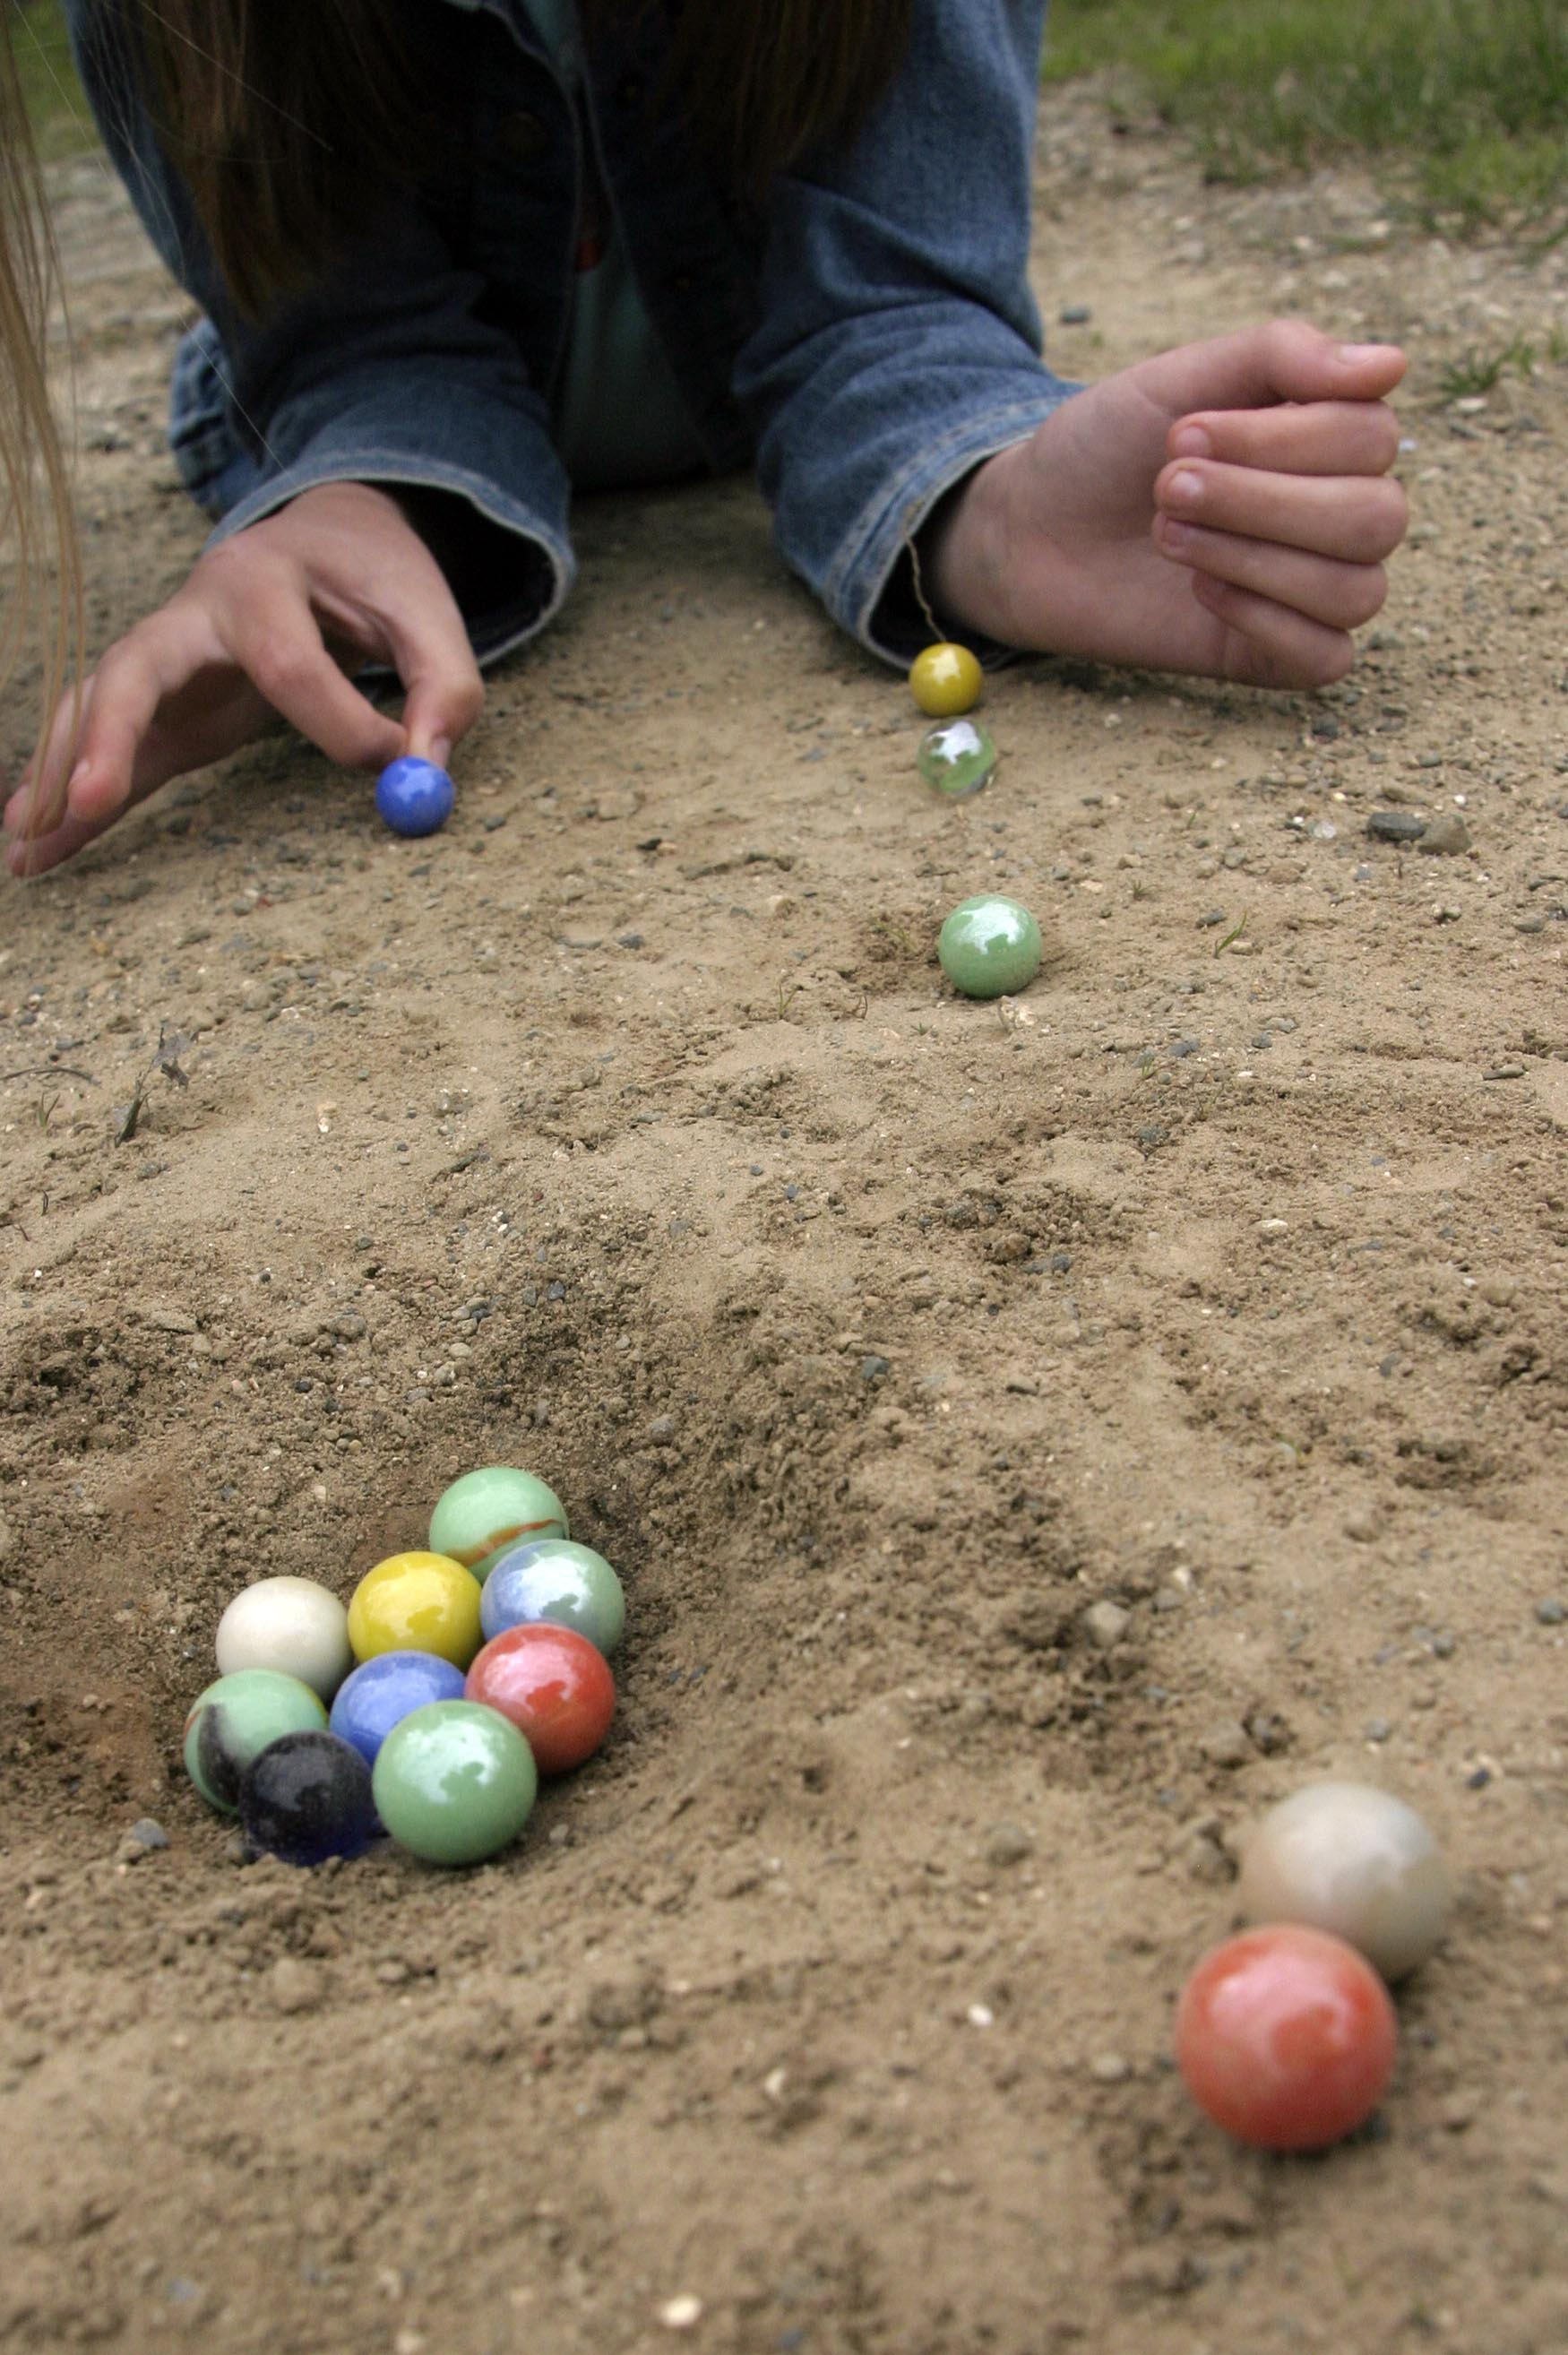 Playing Marbles. For Bev Dauphinee